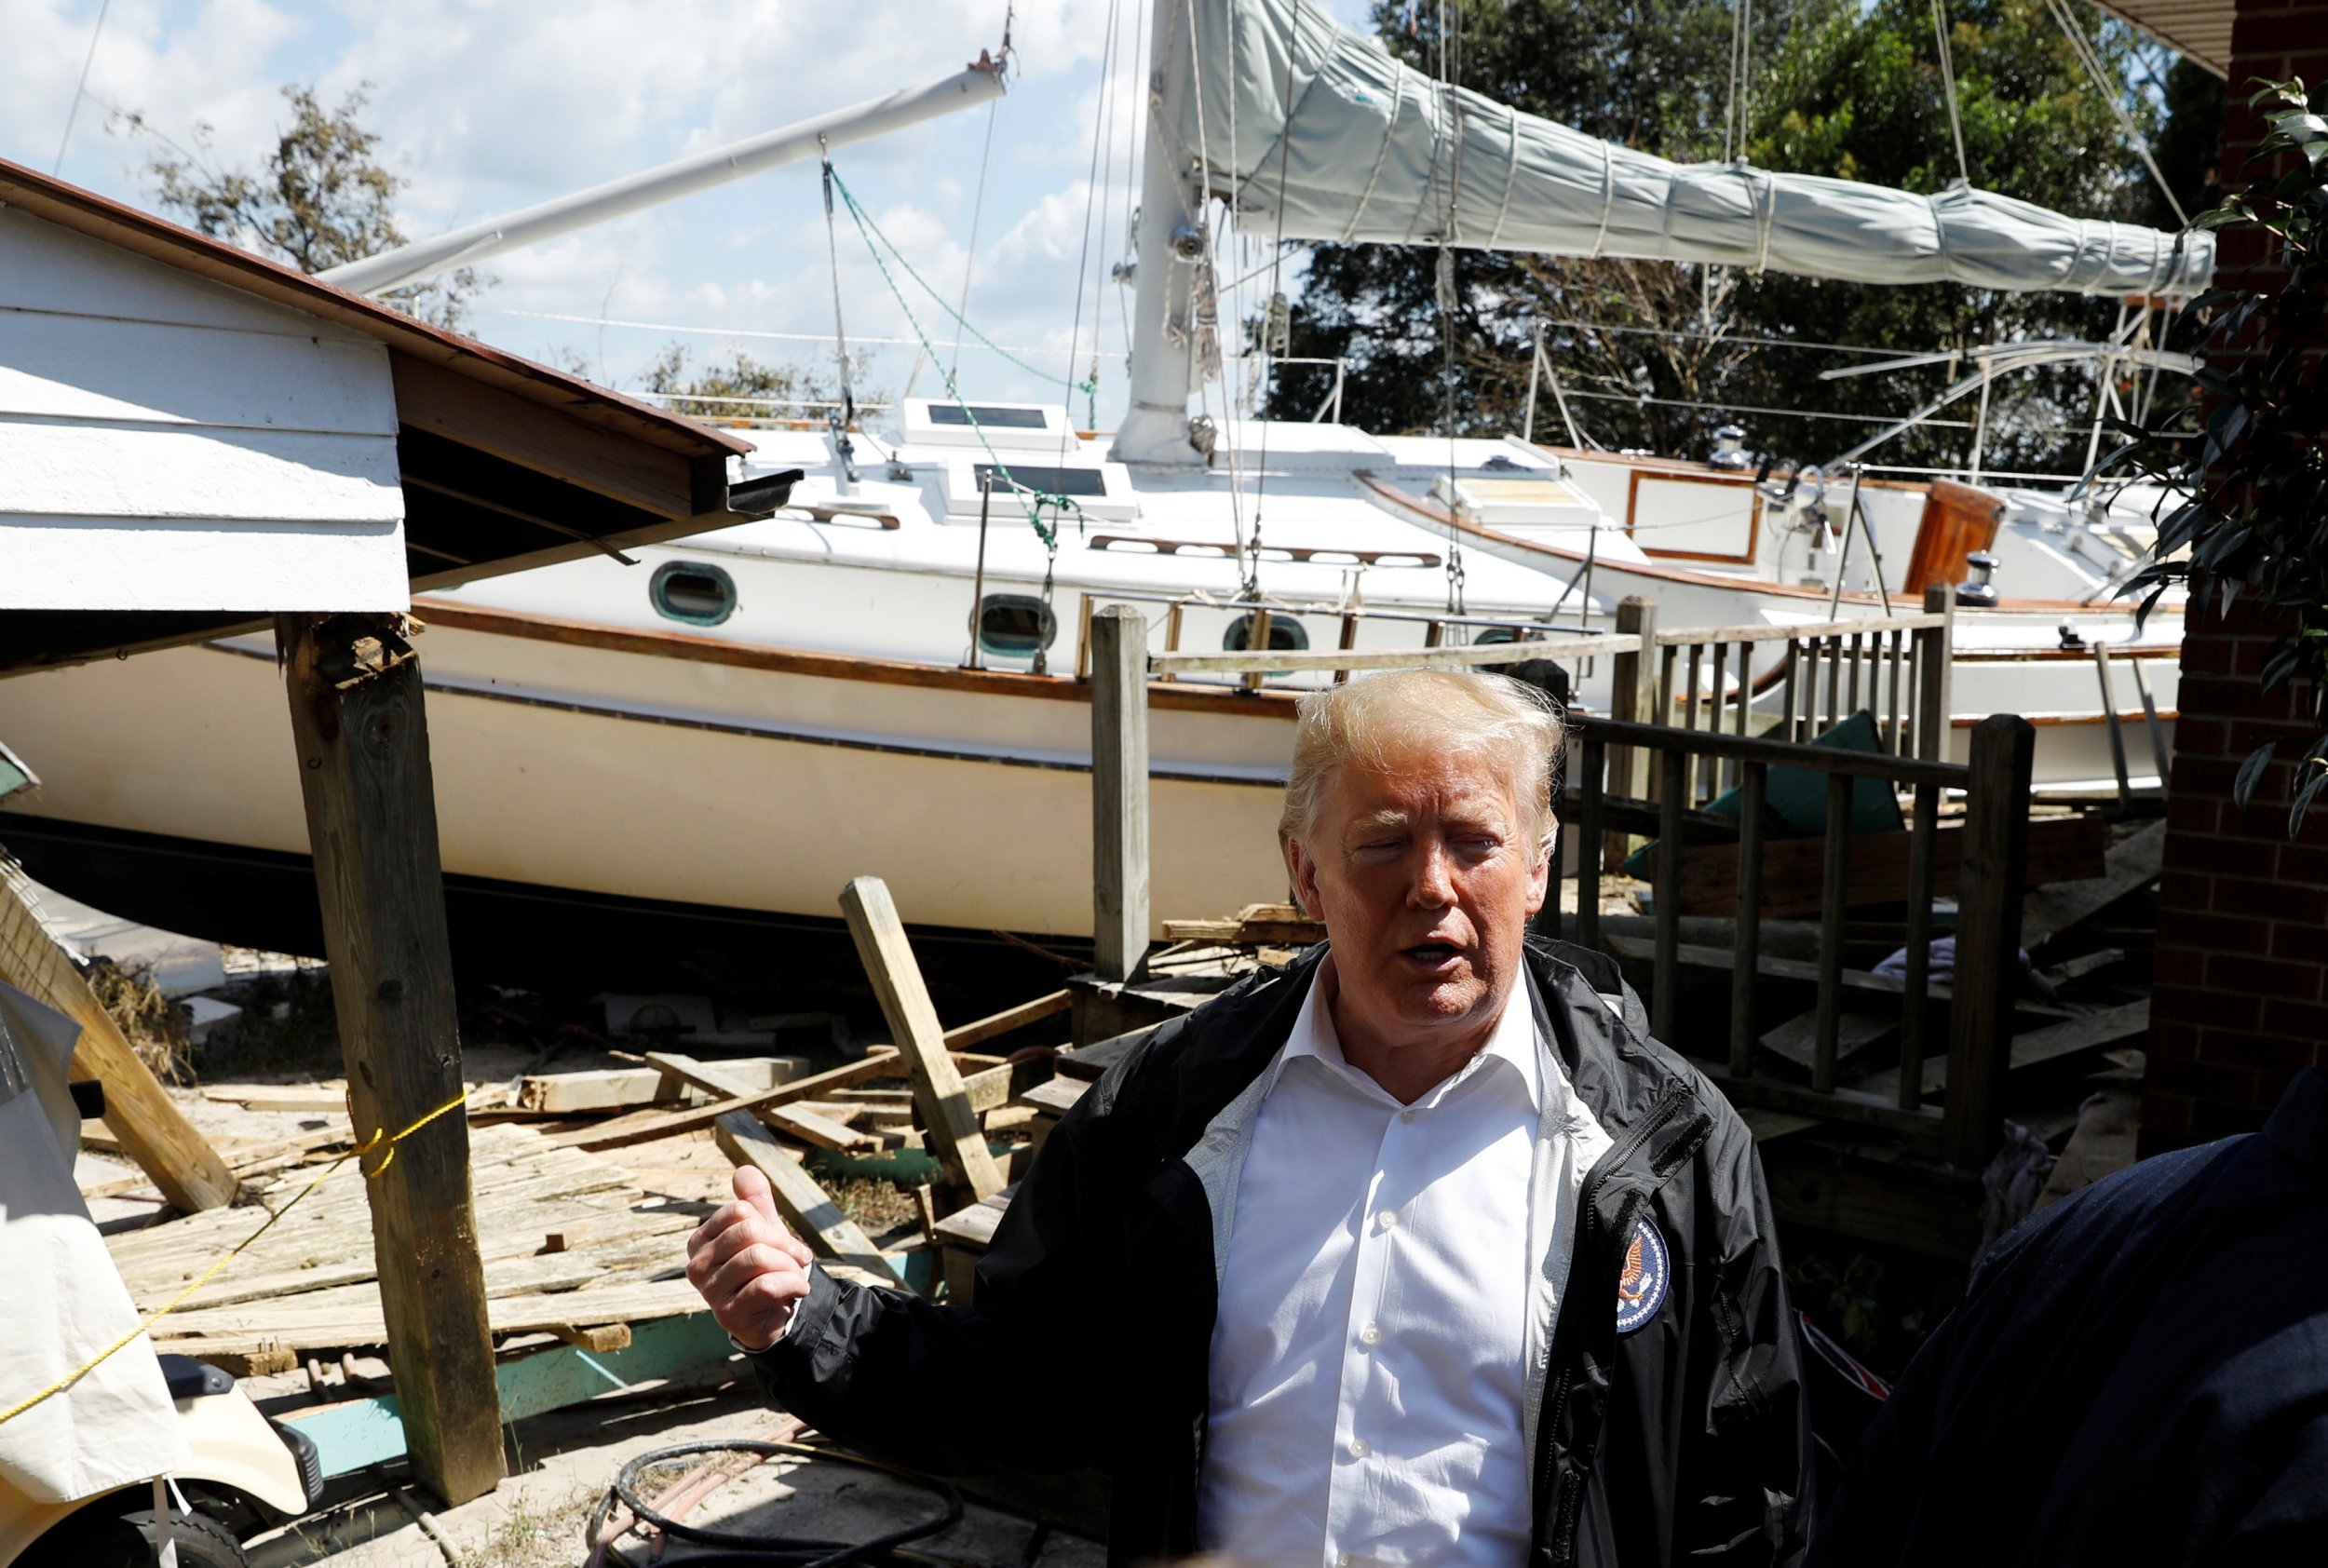 U.S. President Donald Trump stands in front of a damaged sailboat while touring Hurricane Florence damage in New Bern, North Carolina, U.S., September 19, 2018. REUTERS/Kevin Lamarque